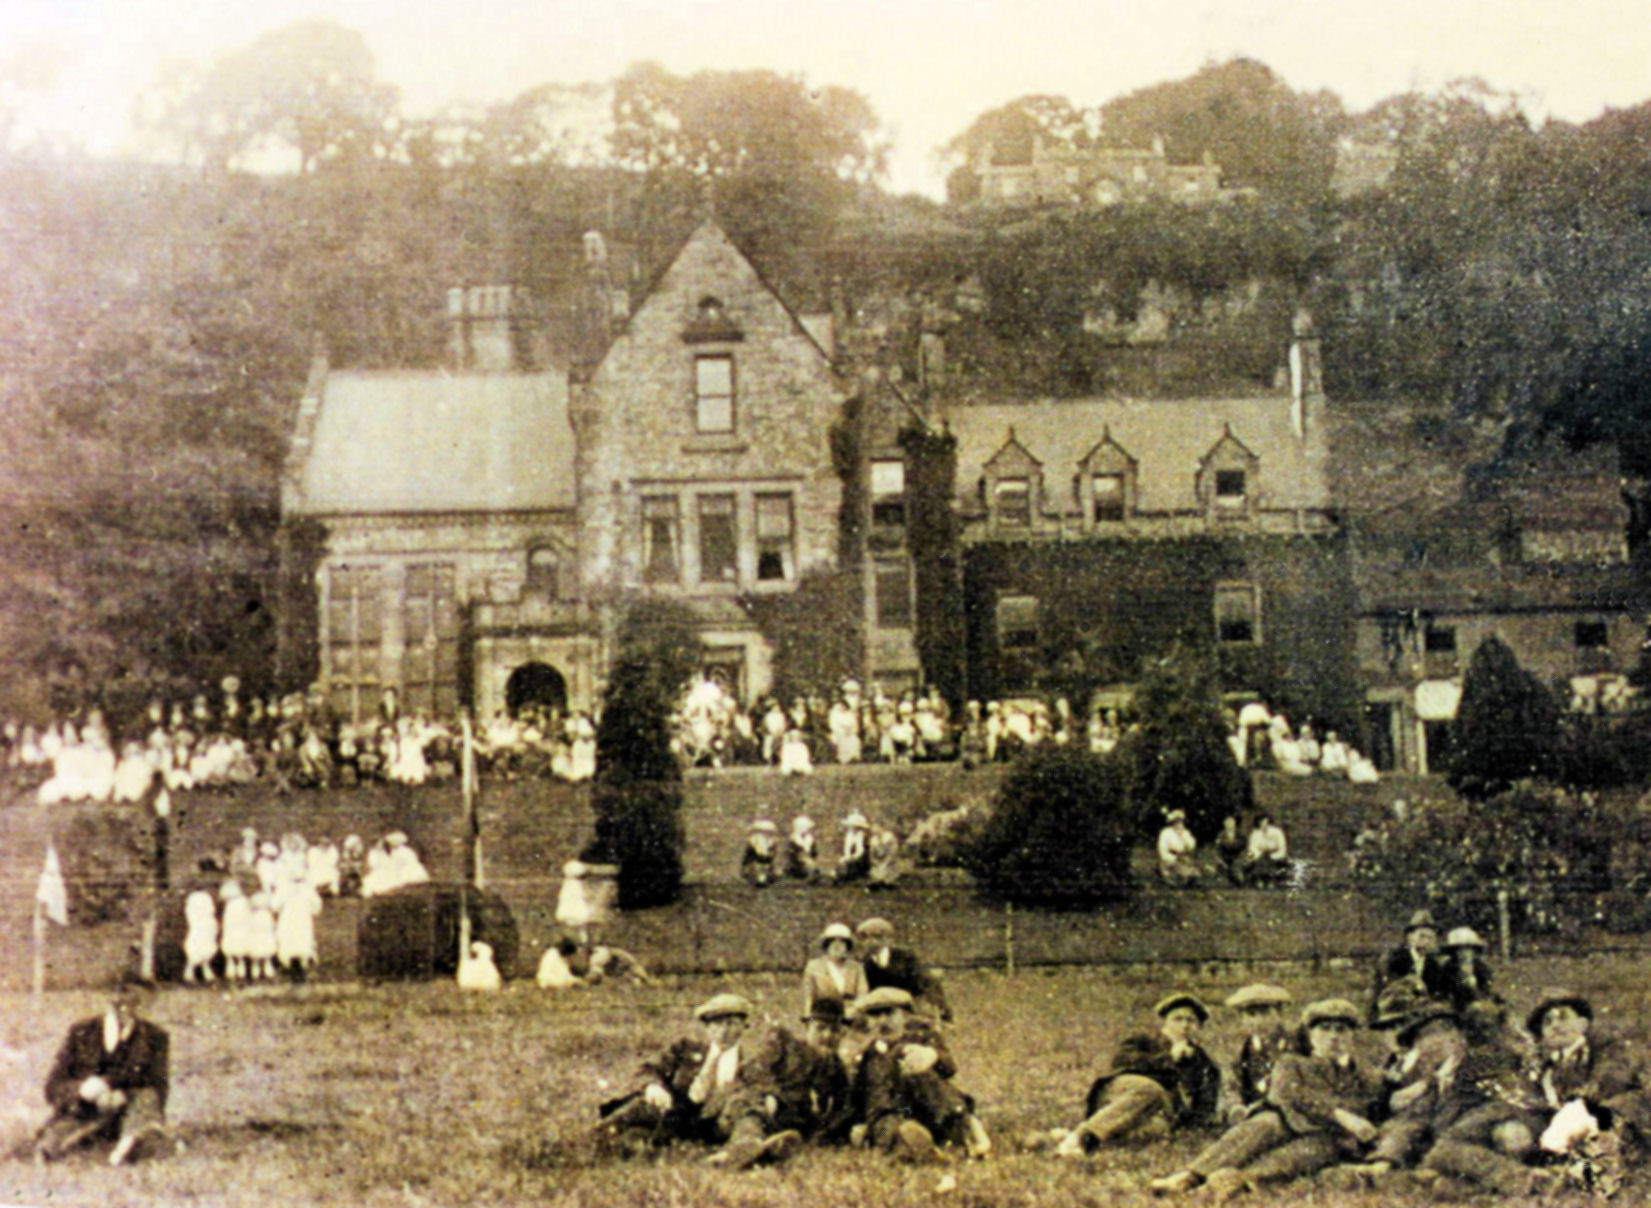 Peace celebrations at the Rookery 1919. Courtesy of Ann Holubecki.